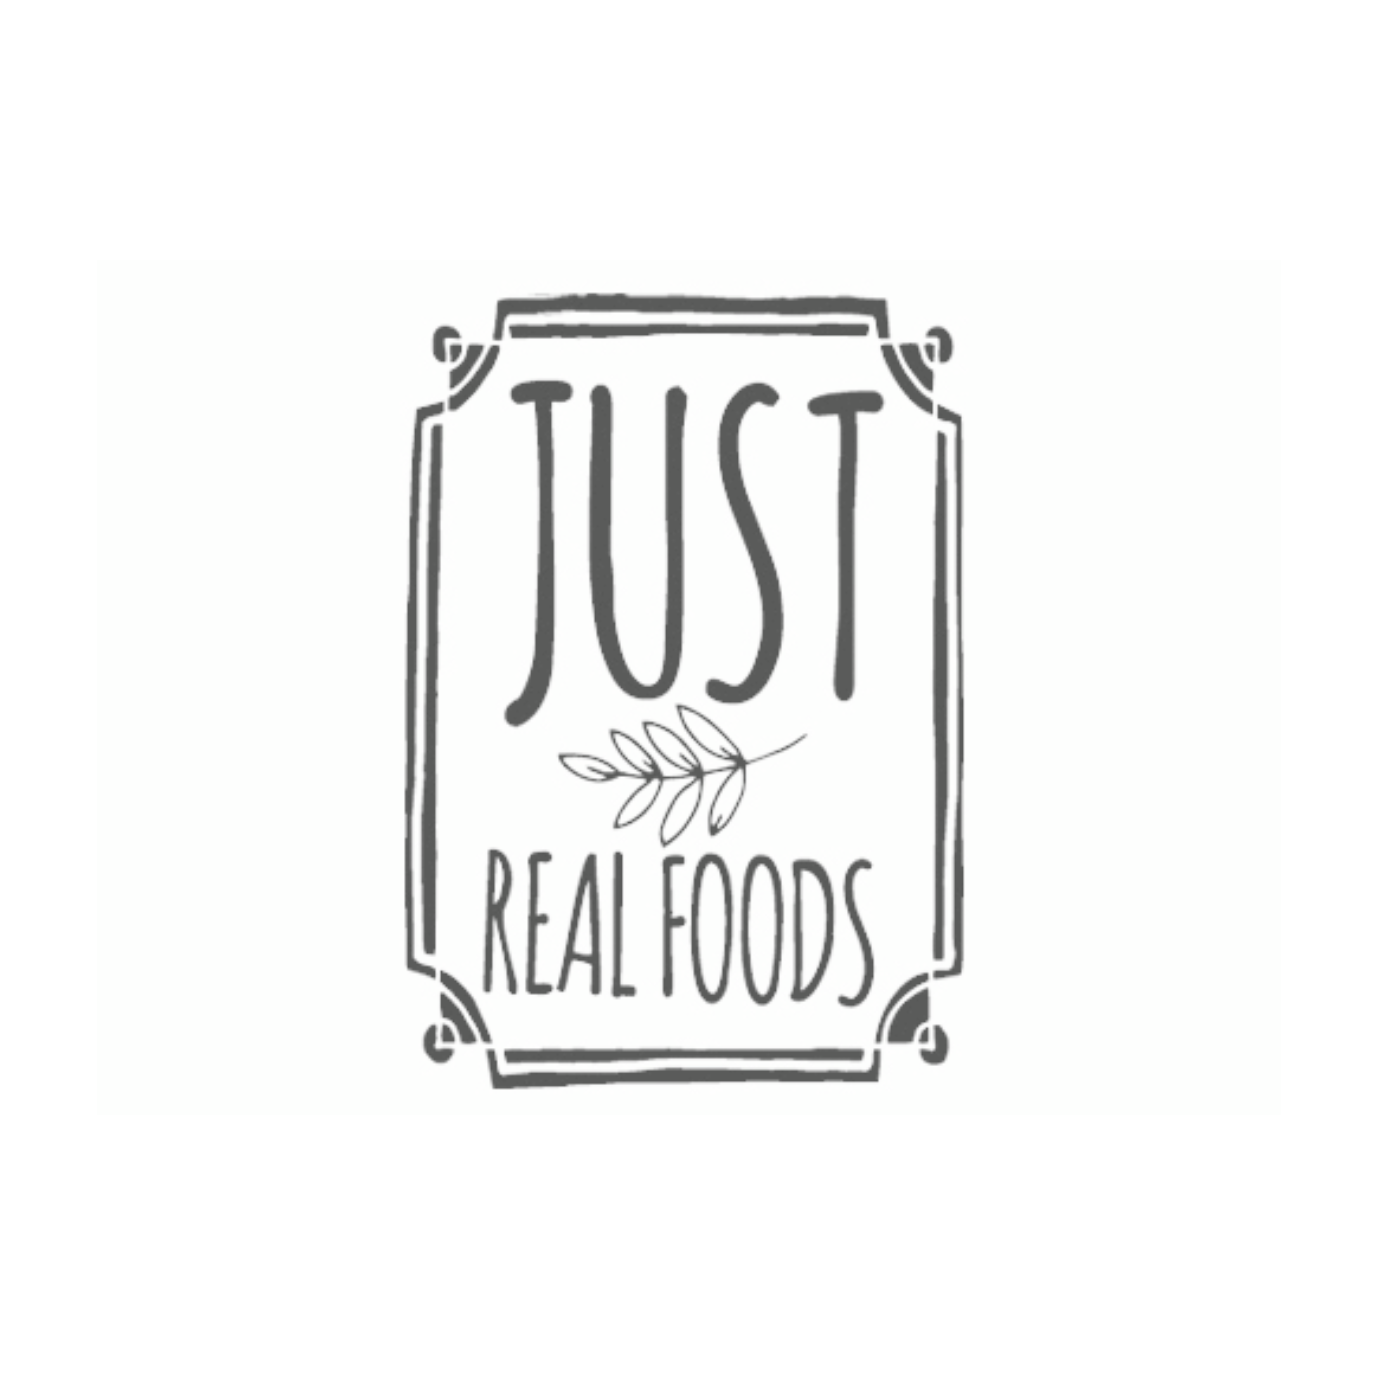 Just Real Foods - Certified Paleo by the Paleo Foundation